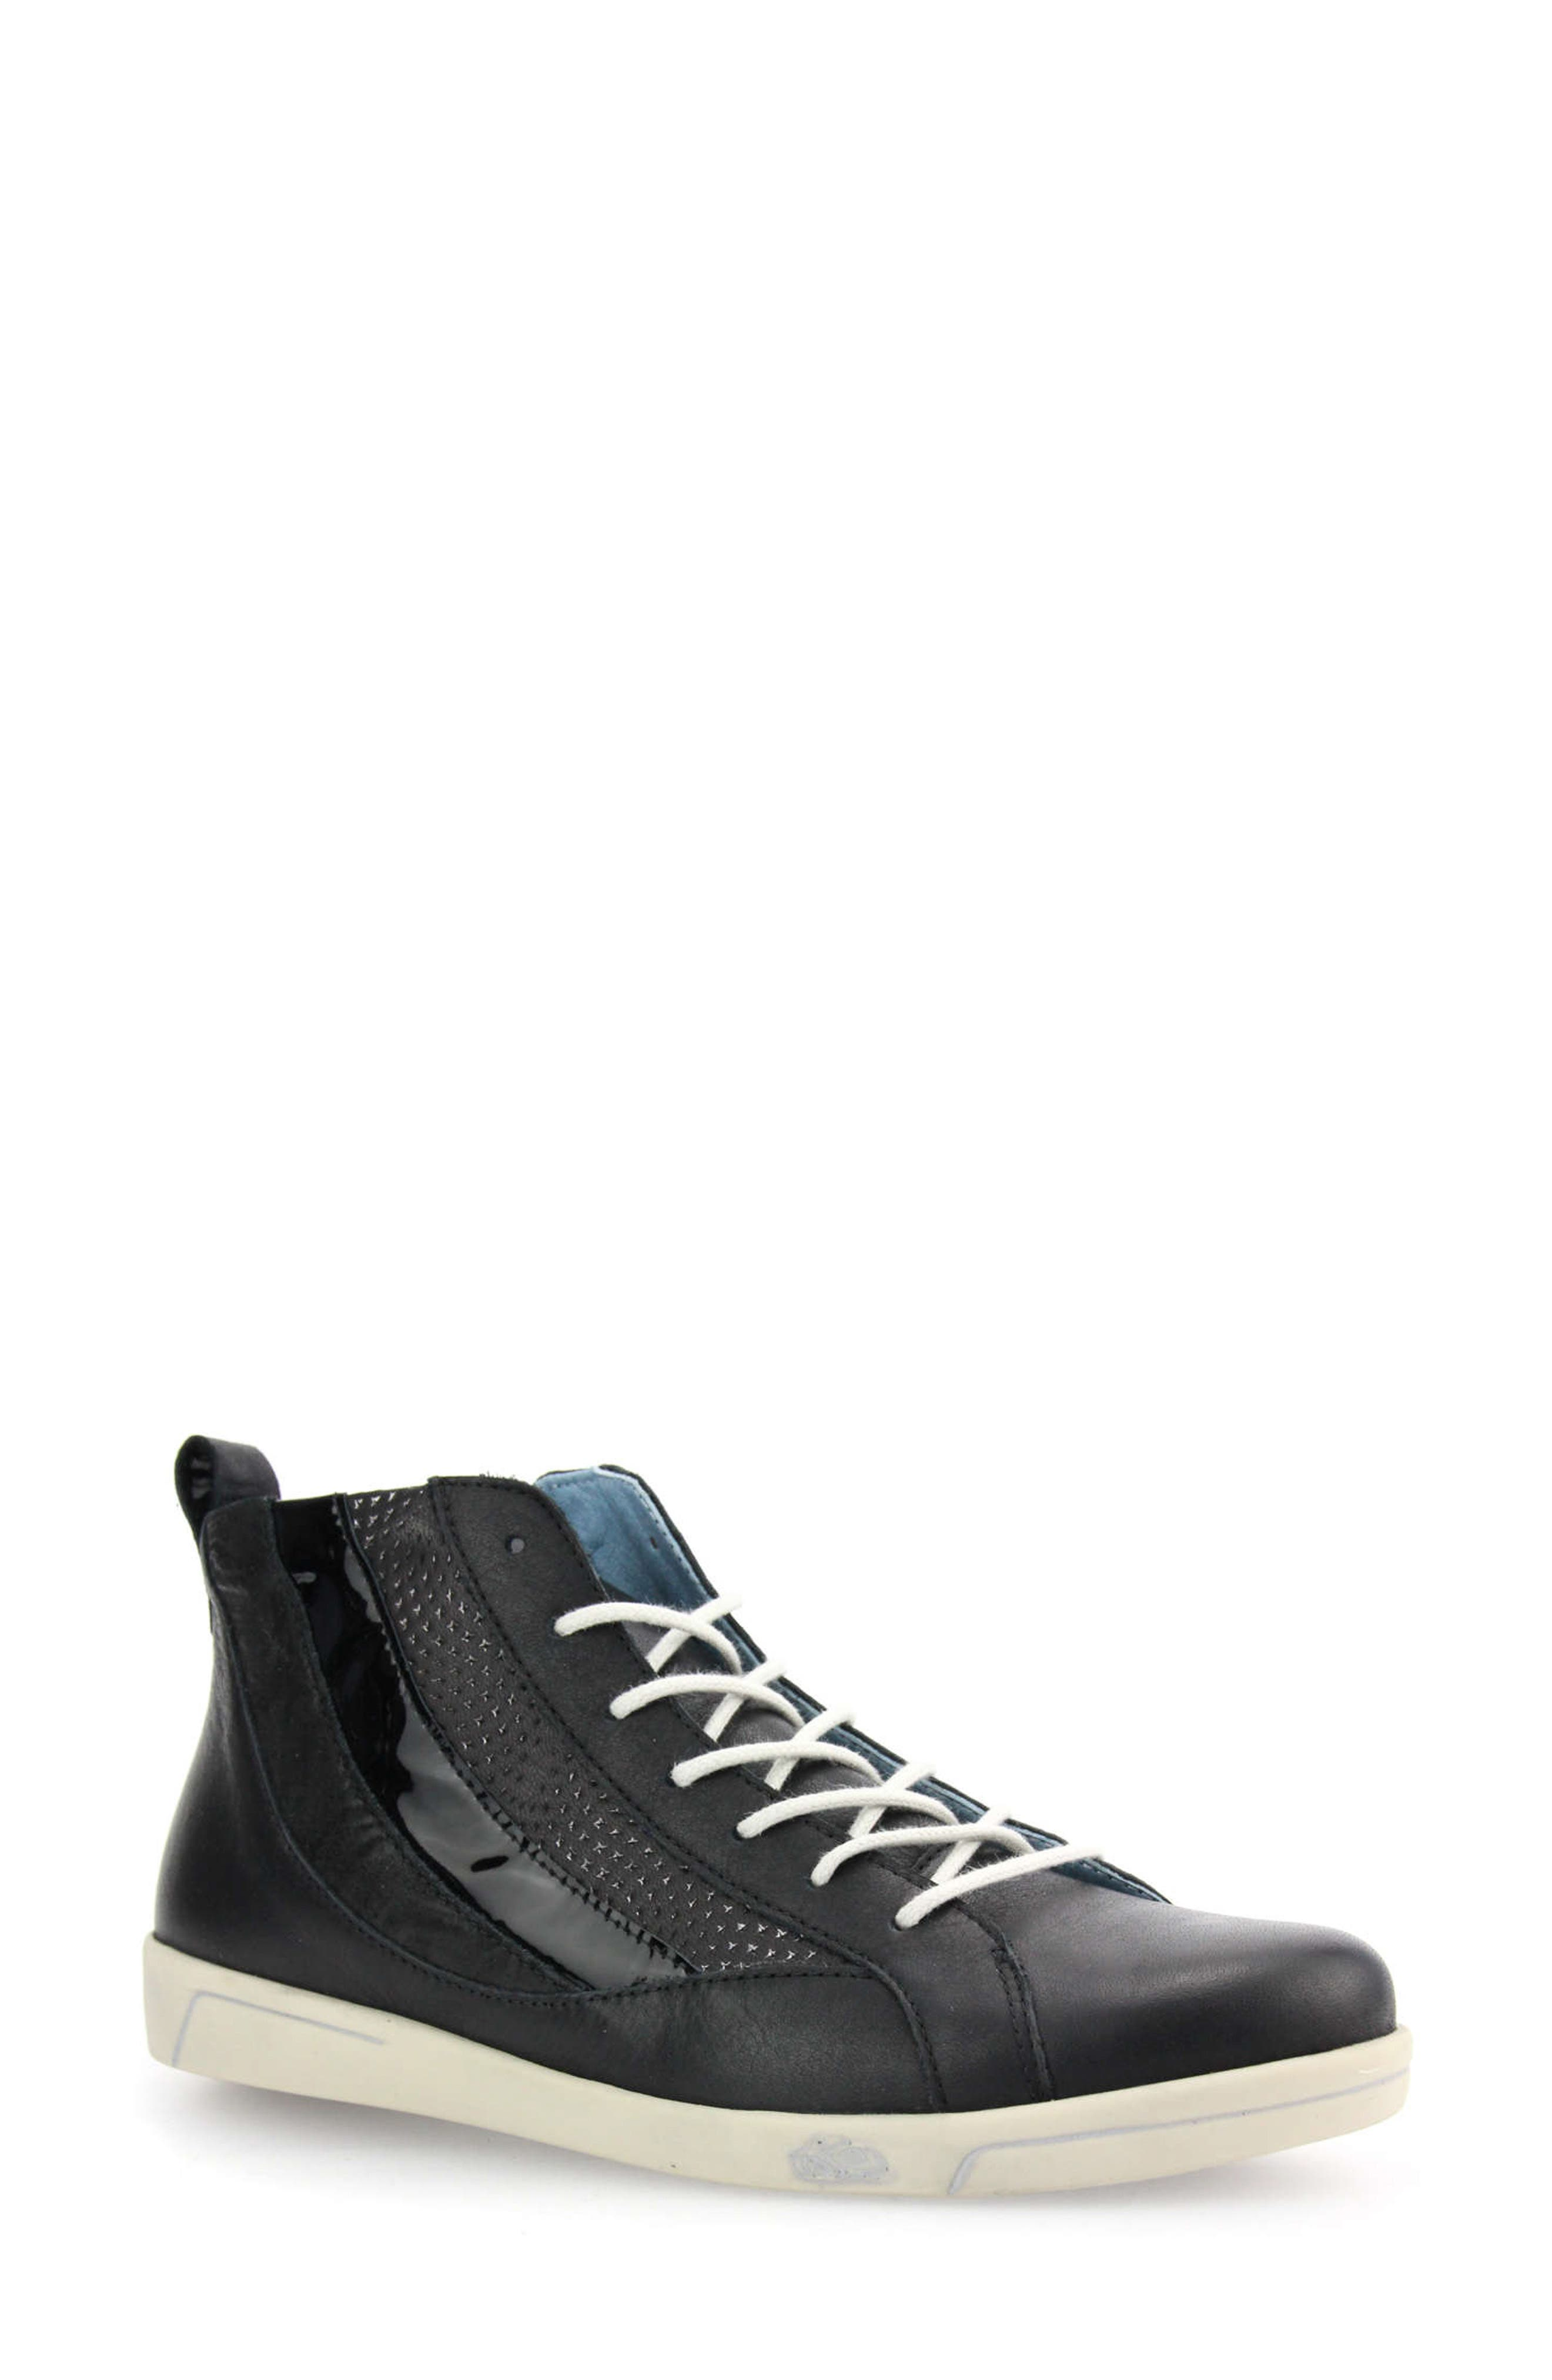 Amelia Leather High Top Sneaker